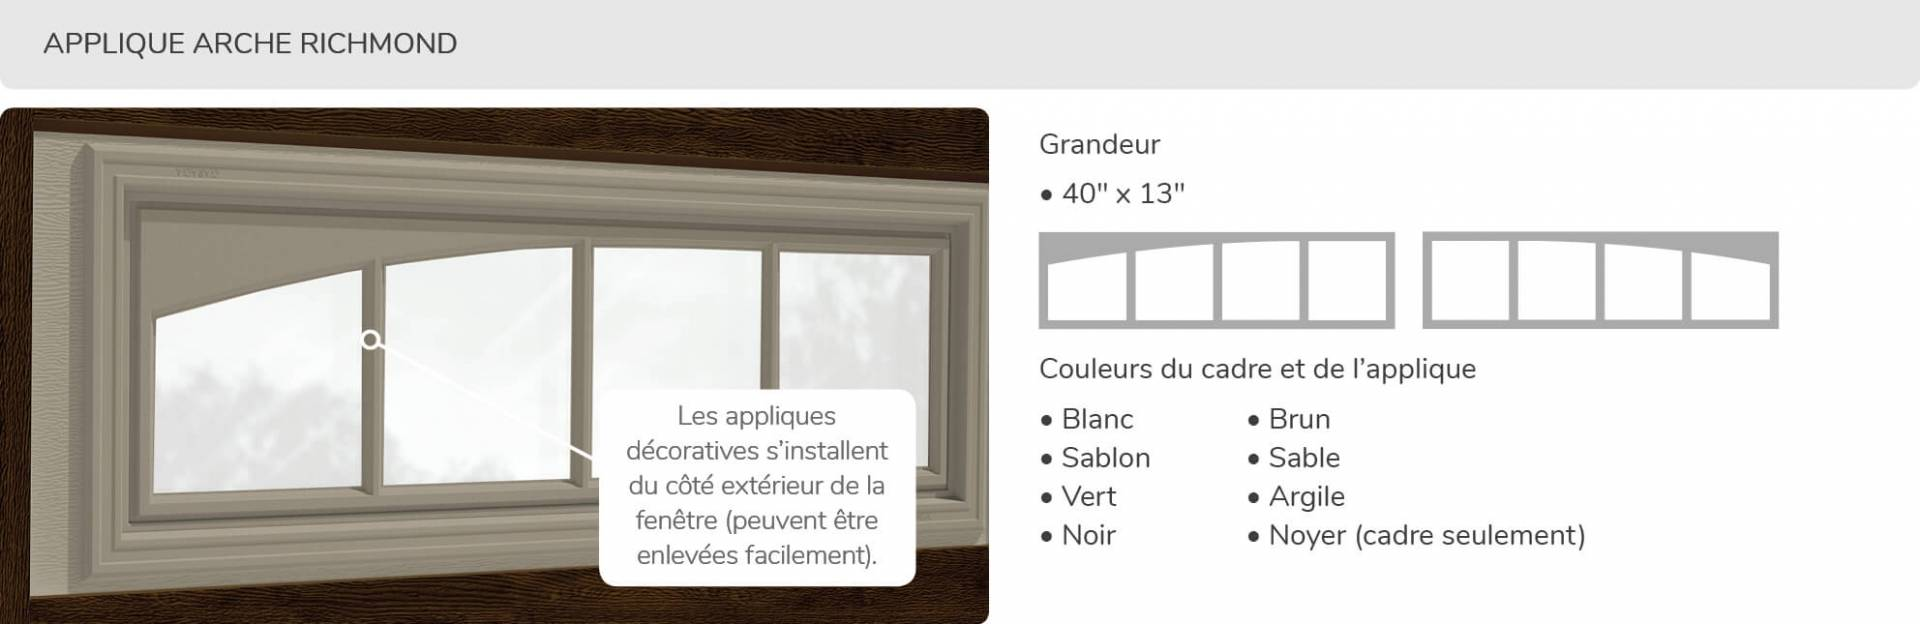 Applique Arche Richmond, 40' x 13', disponible pour la porte R16